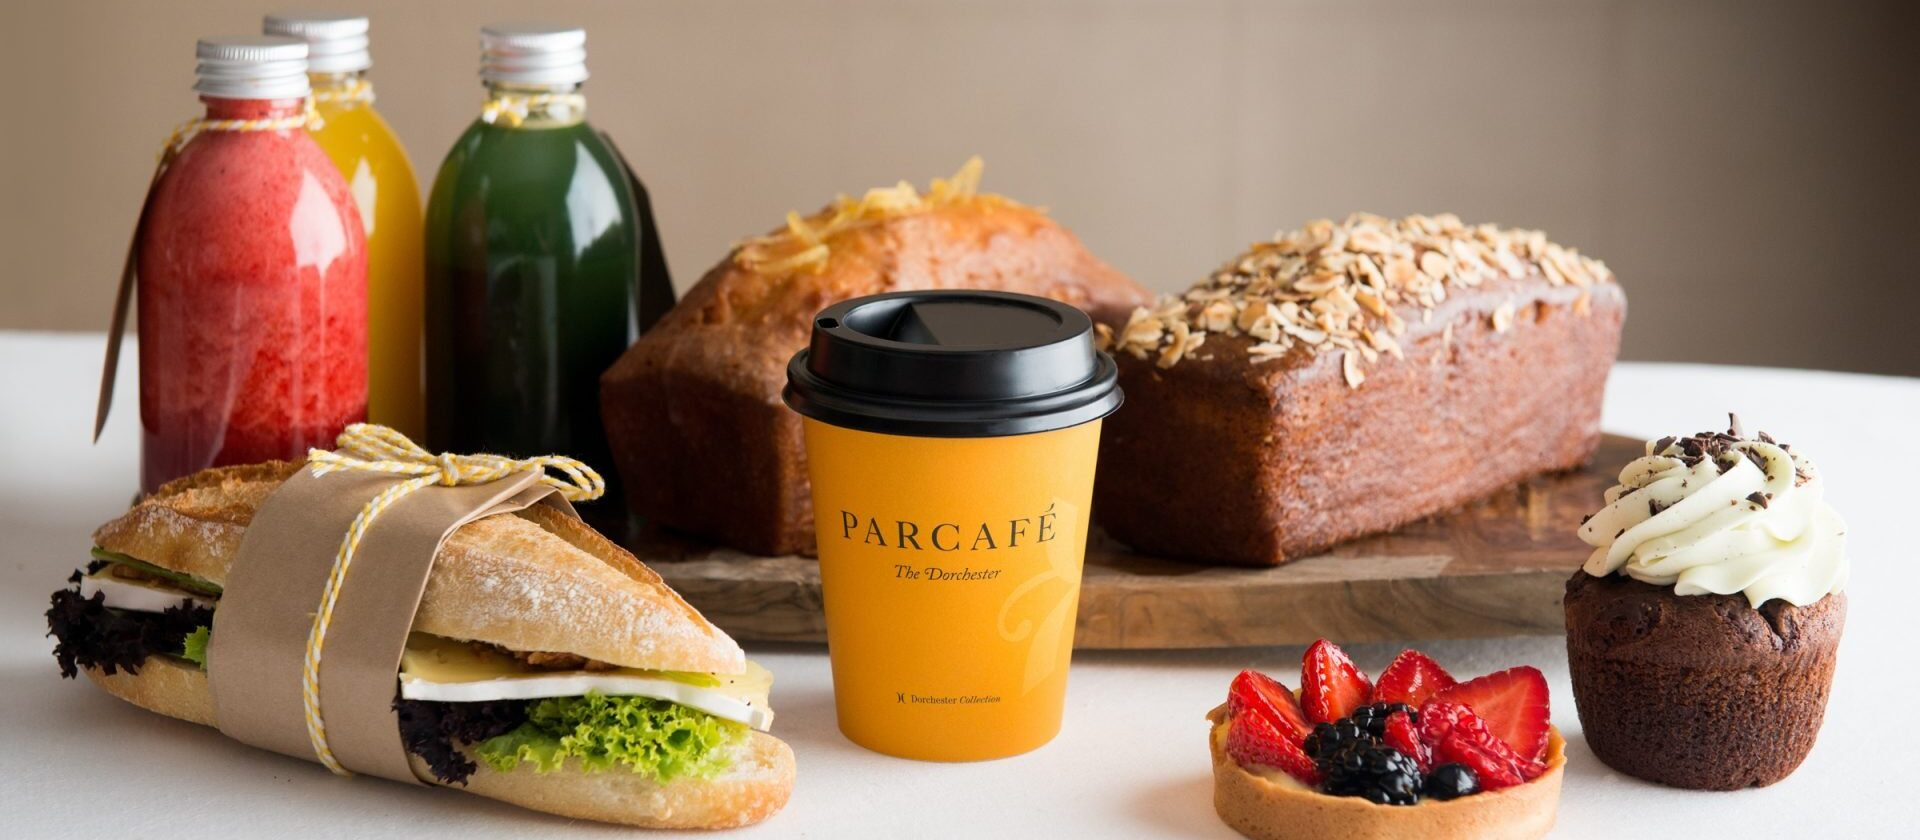 london-the-dorchester-parcafe-coffee-cakes-pastries